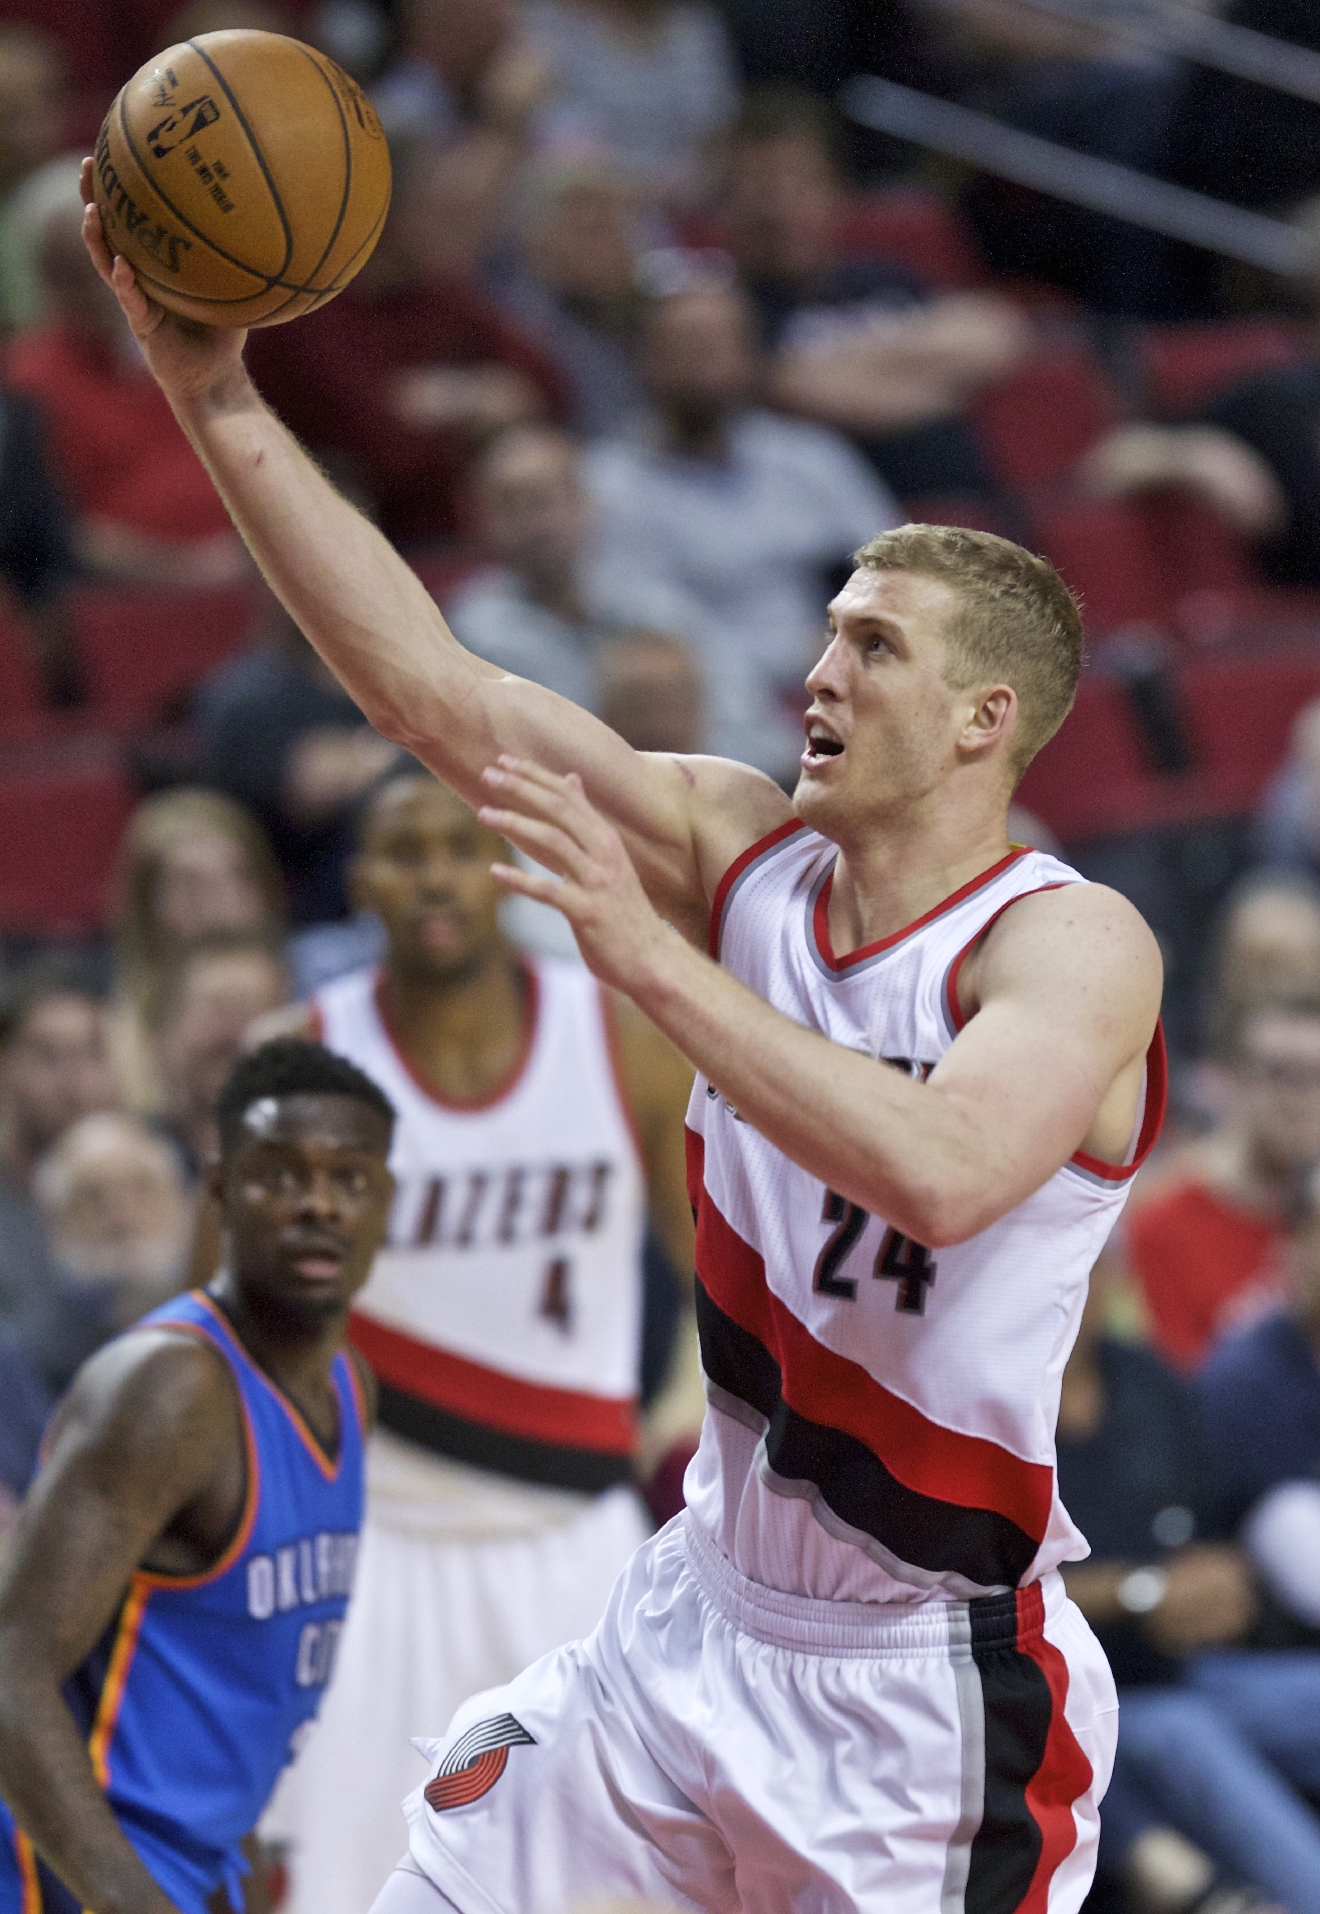 Portland Trail Blazers center Mason Plumlee shoots against the Oklahoma City Thunder during the second half of an NBA basketball game in Portland, Ore., Wednesday, April 6, 2016. (AP Photo/Craig Mitchelldyer)